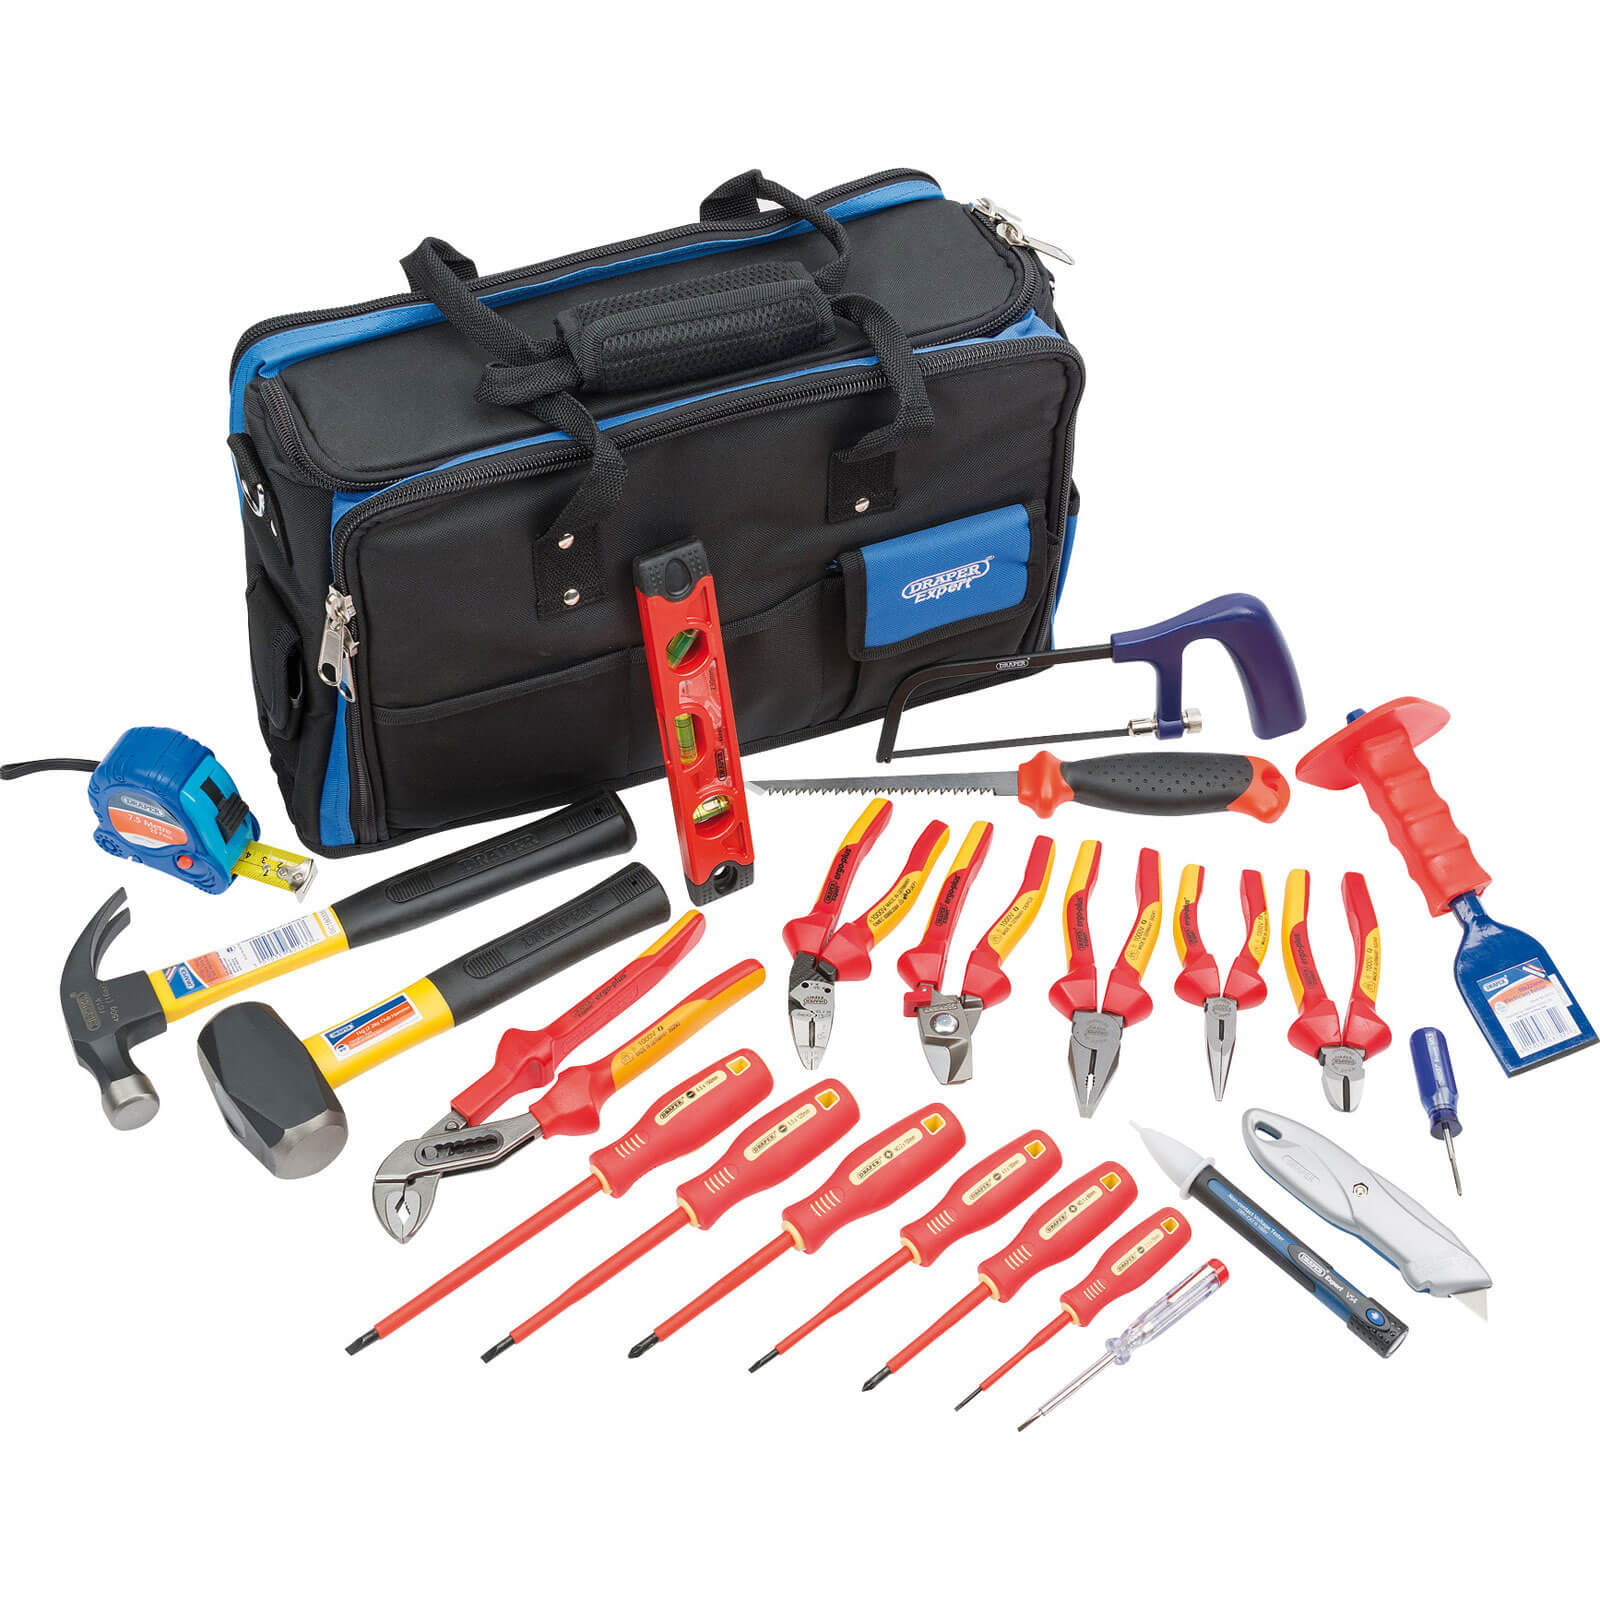 Draper 23 Piece Professional Electricians Tool Kit